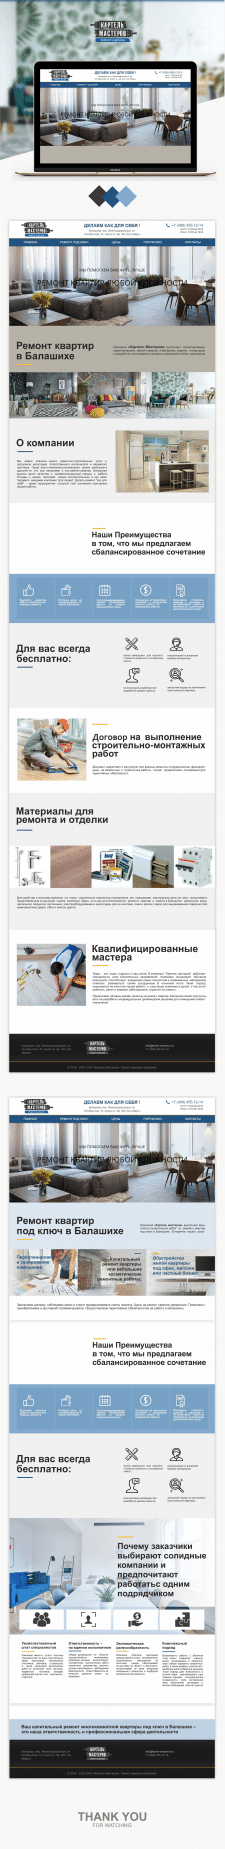 #Design of the main page and the secondary page#